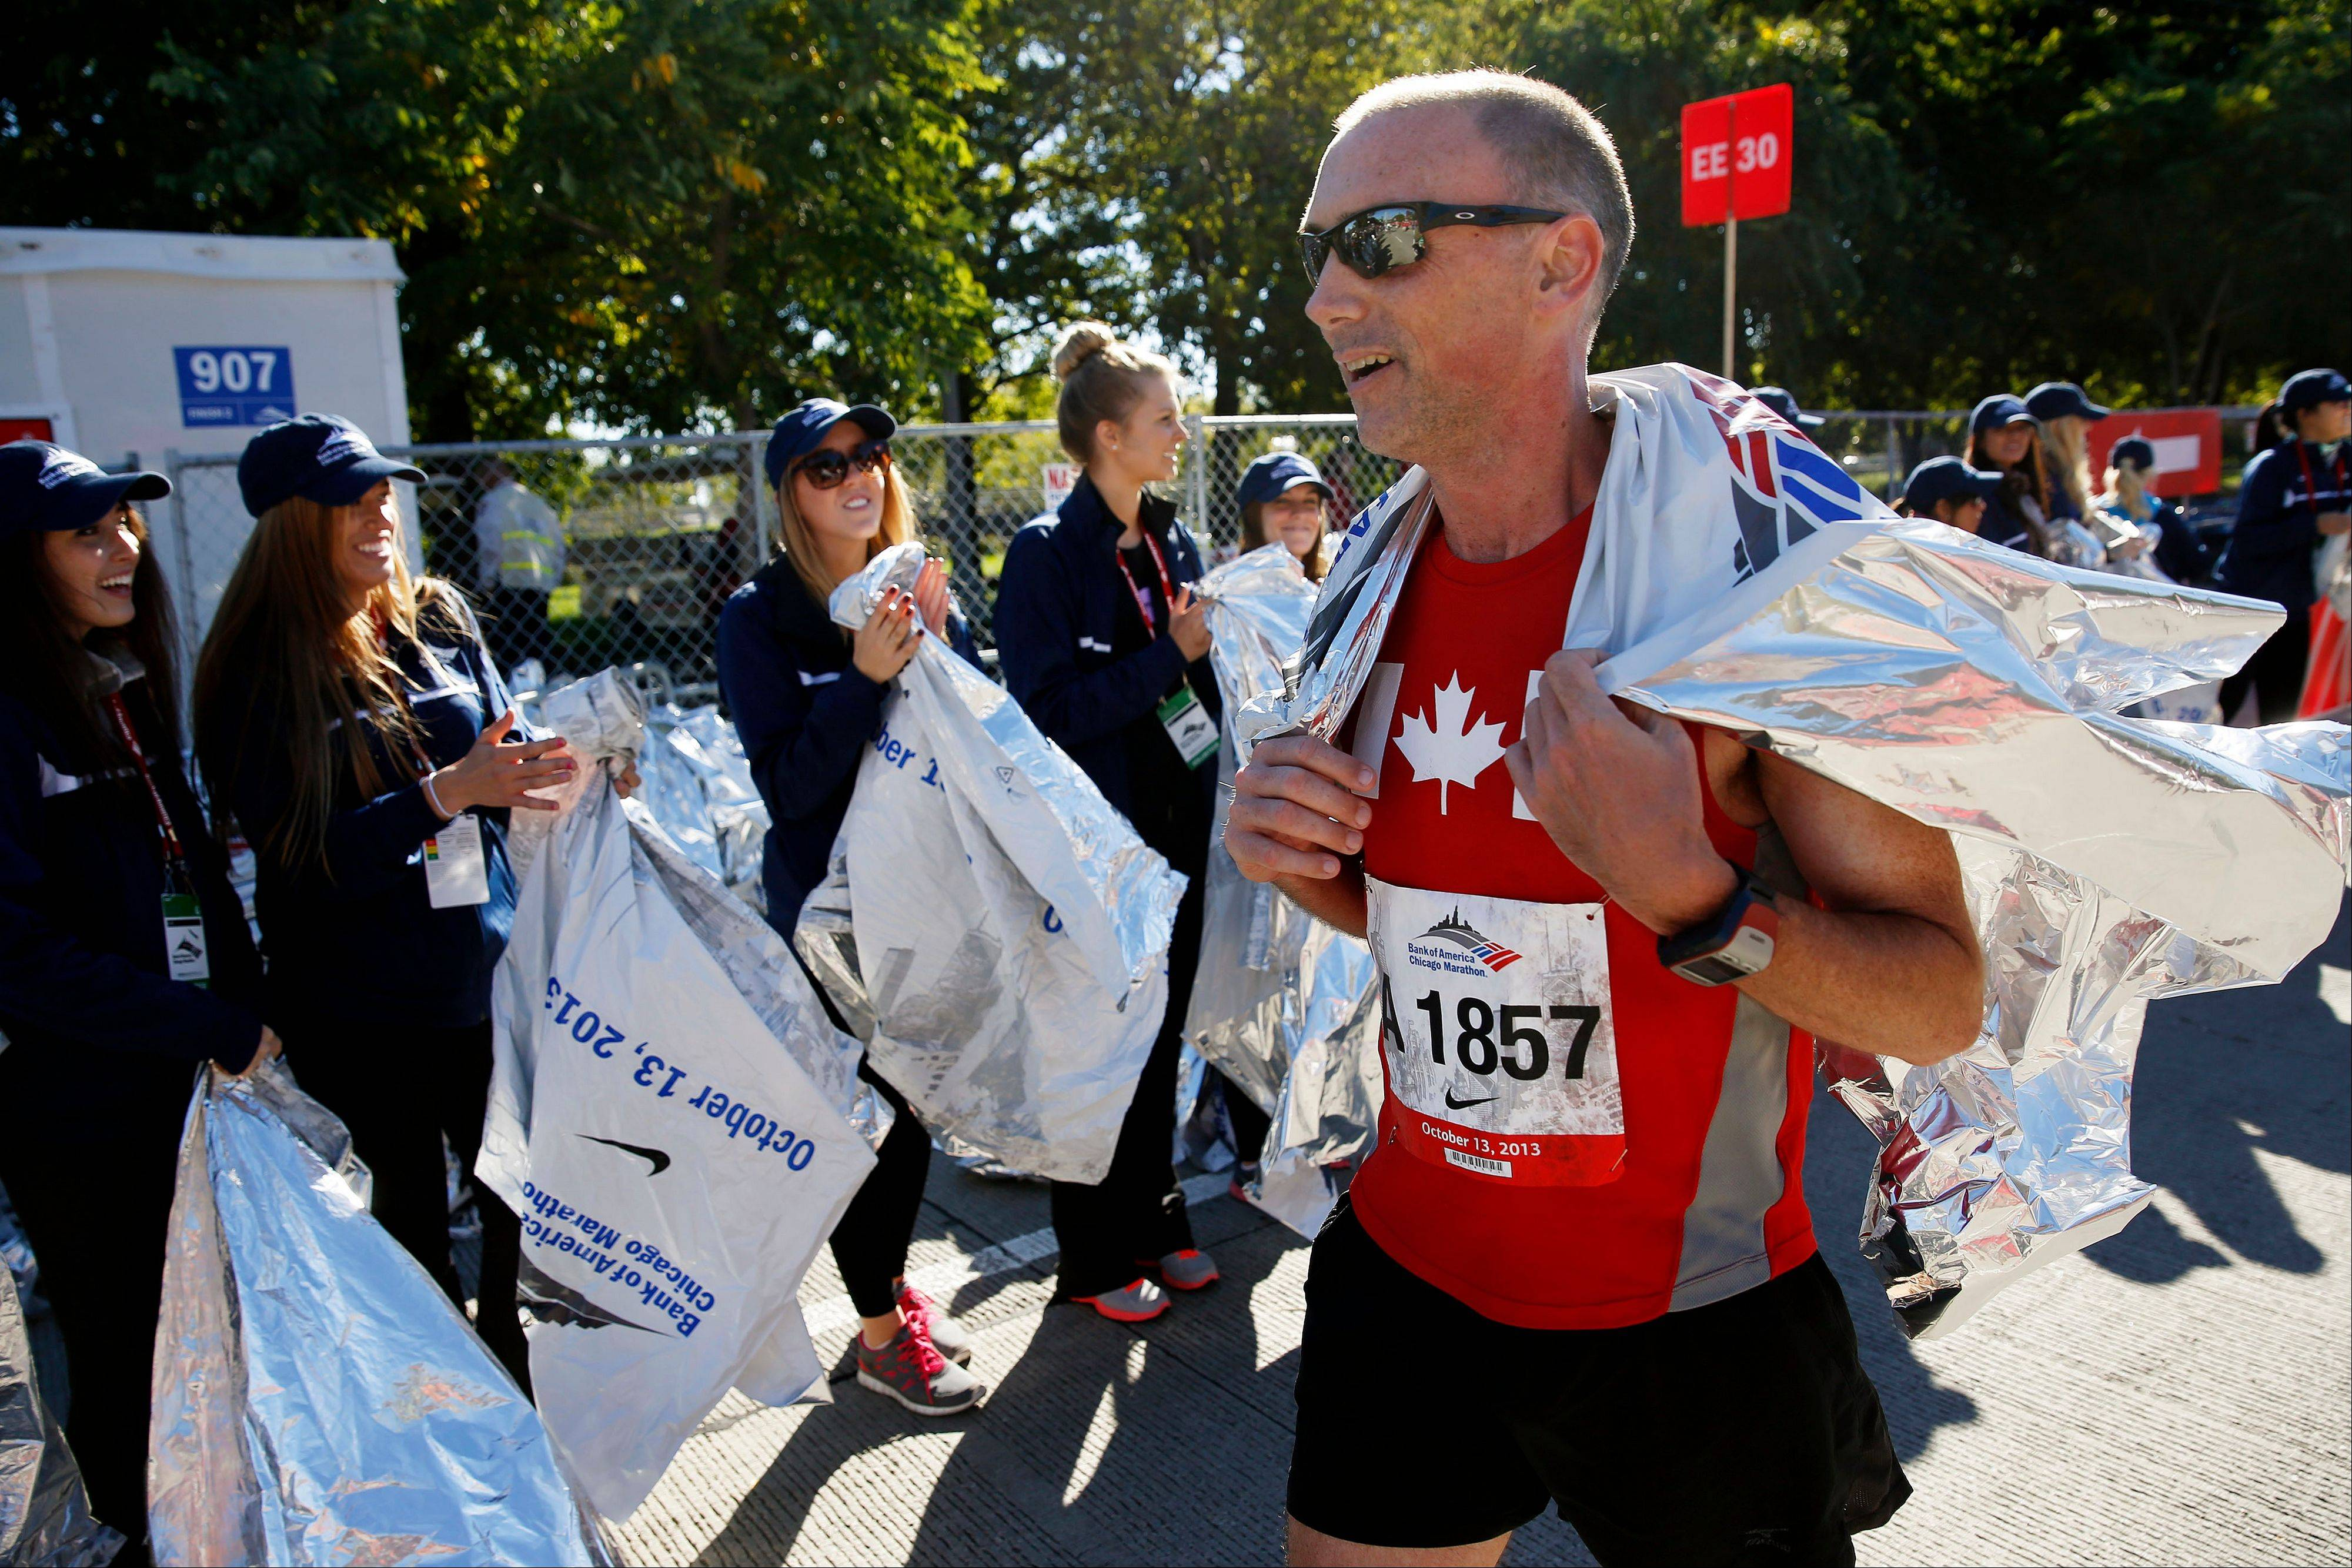 Michael Blois of Canada picks up a blanket after finishing the Chicago Marathon on Sunday, Oct. 13, 2013, in Chicago.